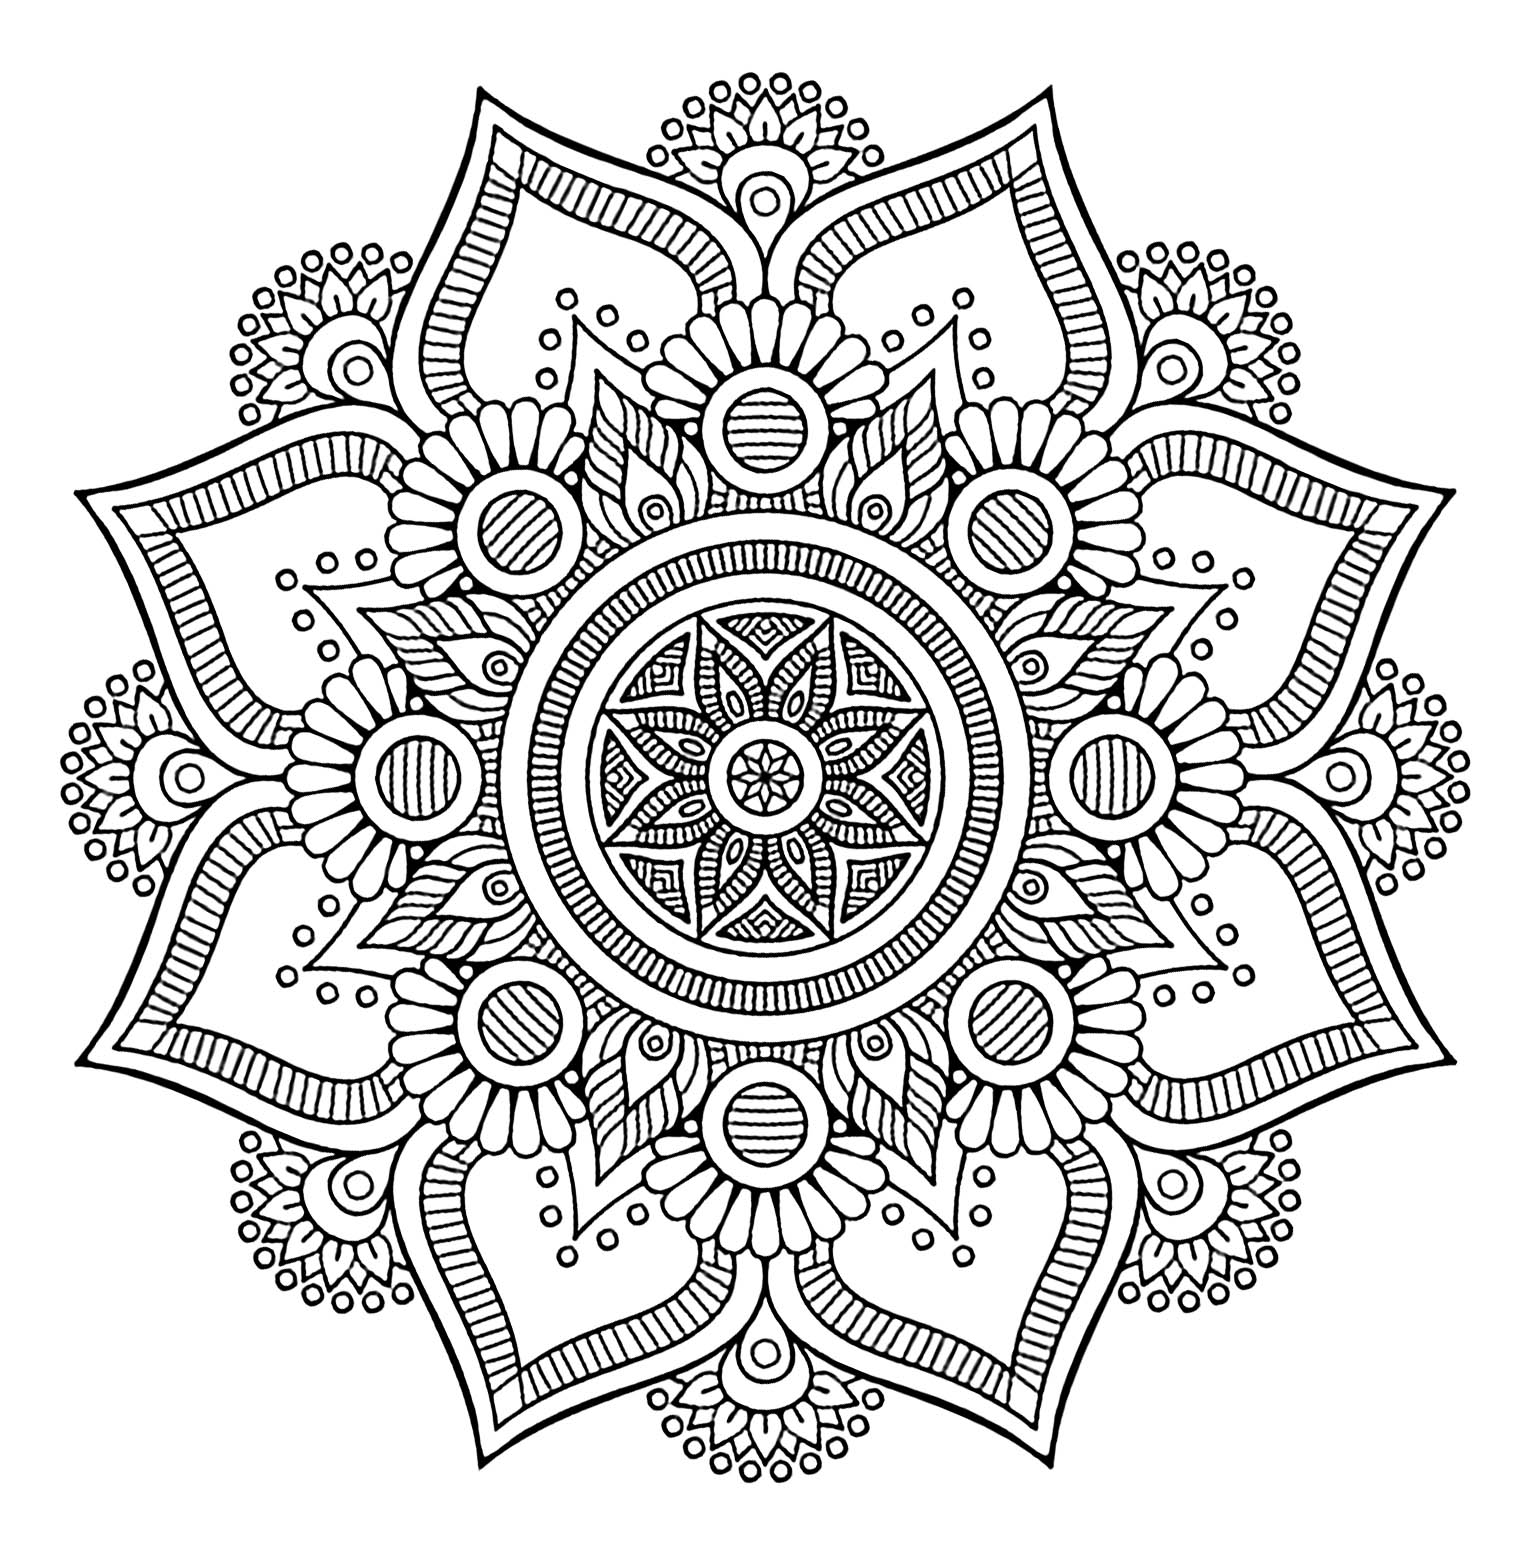 coloring mandalas coloring to calm volume one mandalas mandalas coloring